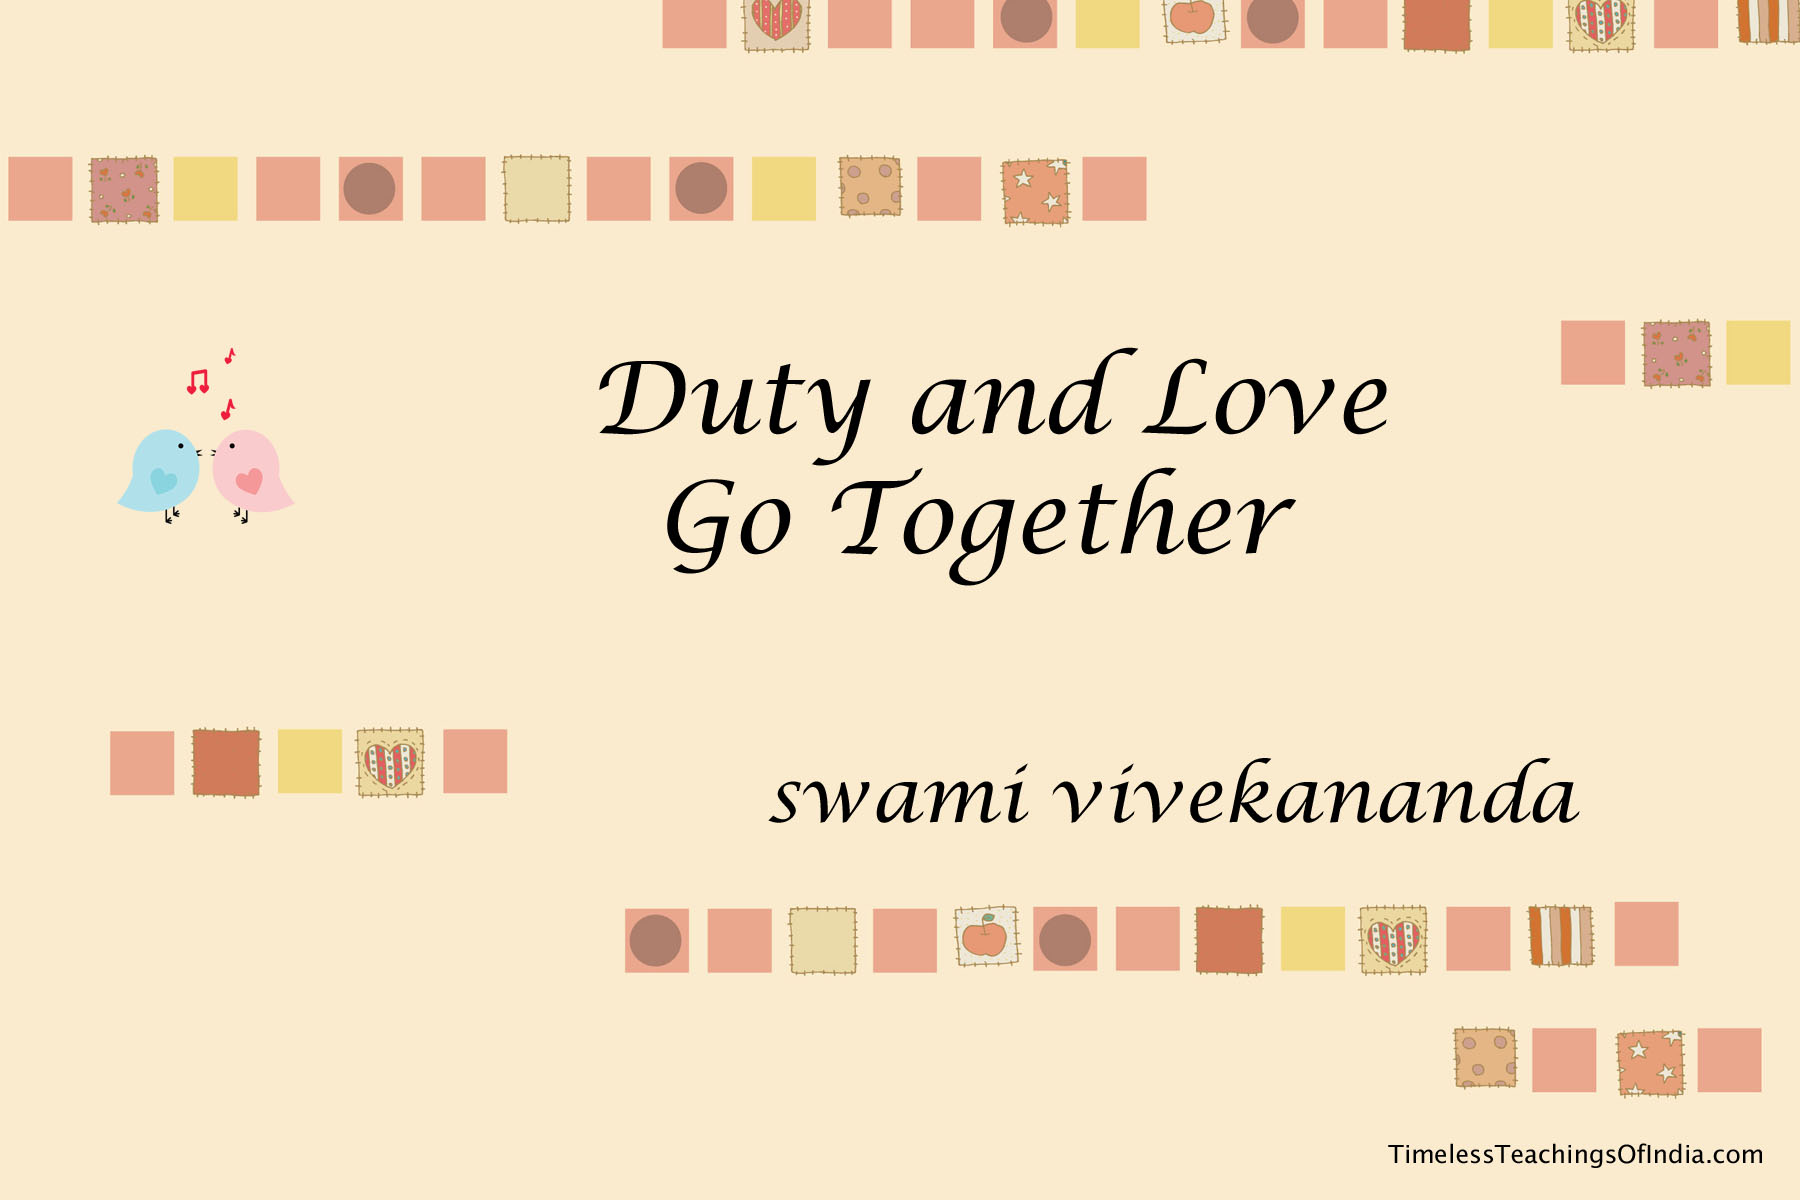 Duty and love go together